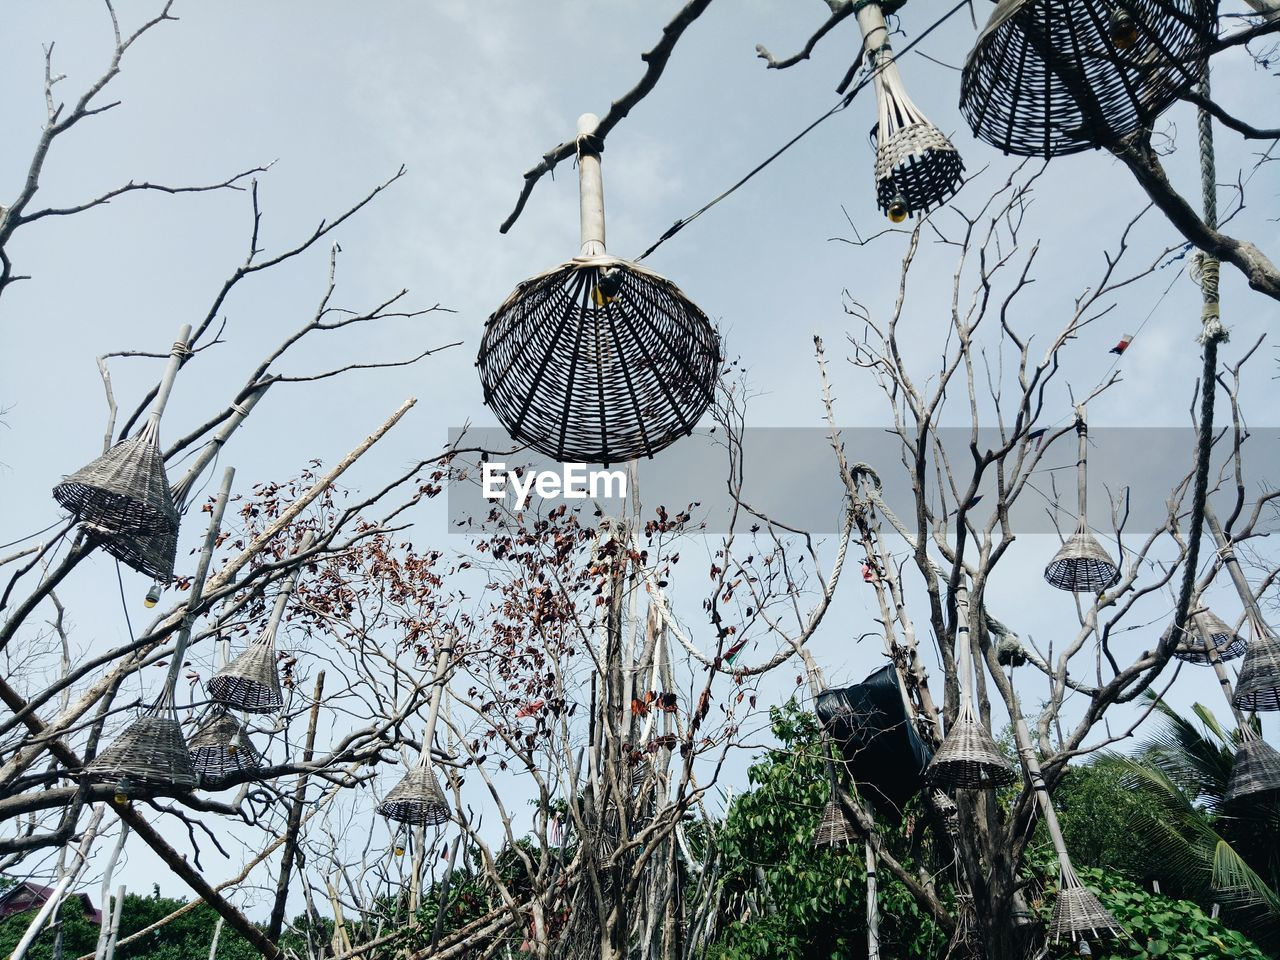 tree, plant, hanging, low angle view, branch, day, no people, sky, nature, bare tree, outdoors, decoration, wind chime, focus on foreground, lighting equipment, built structure, architecture, beauty in nature, roof